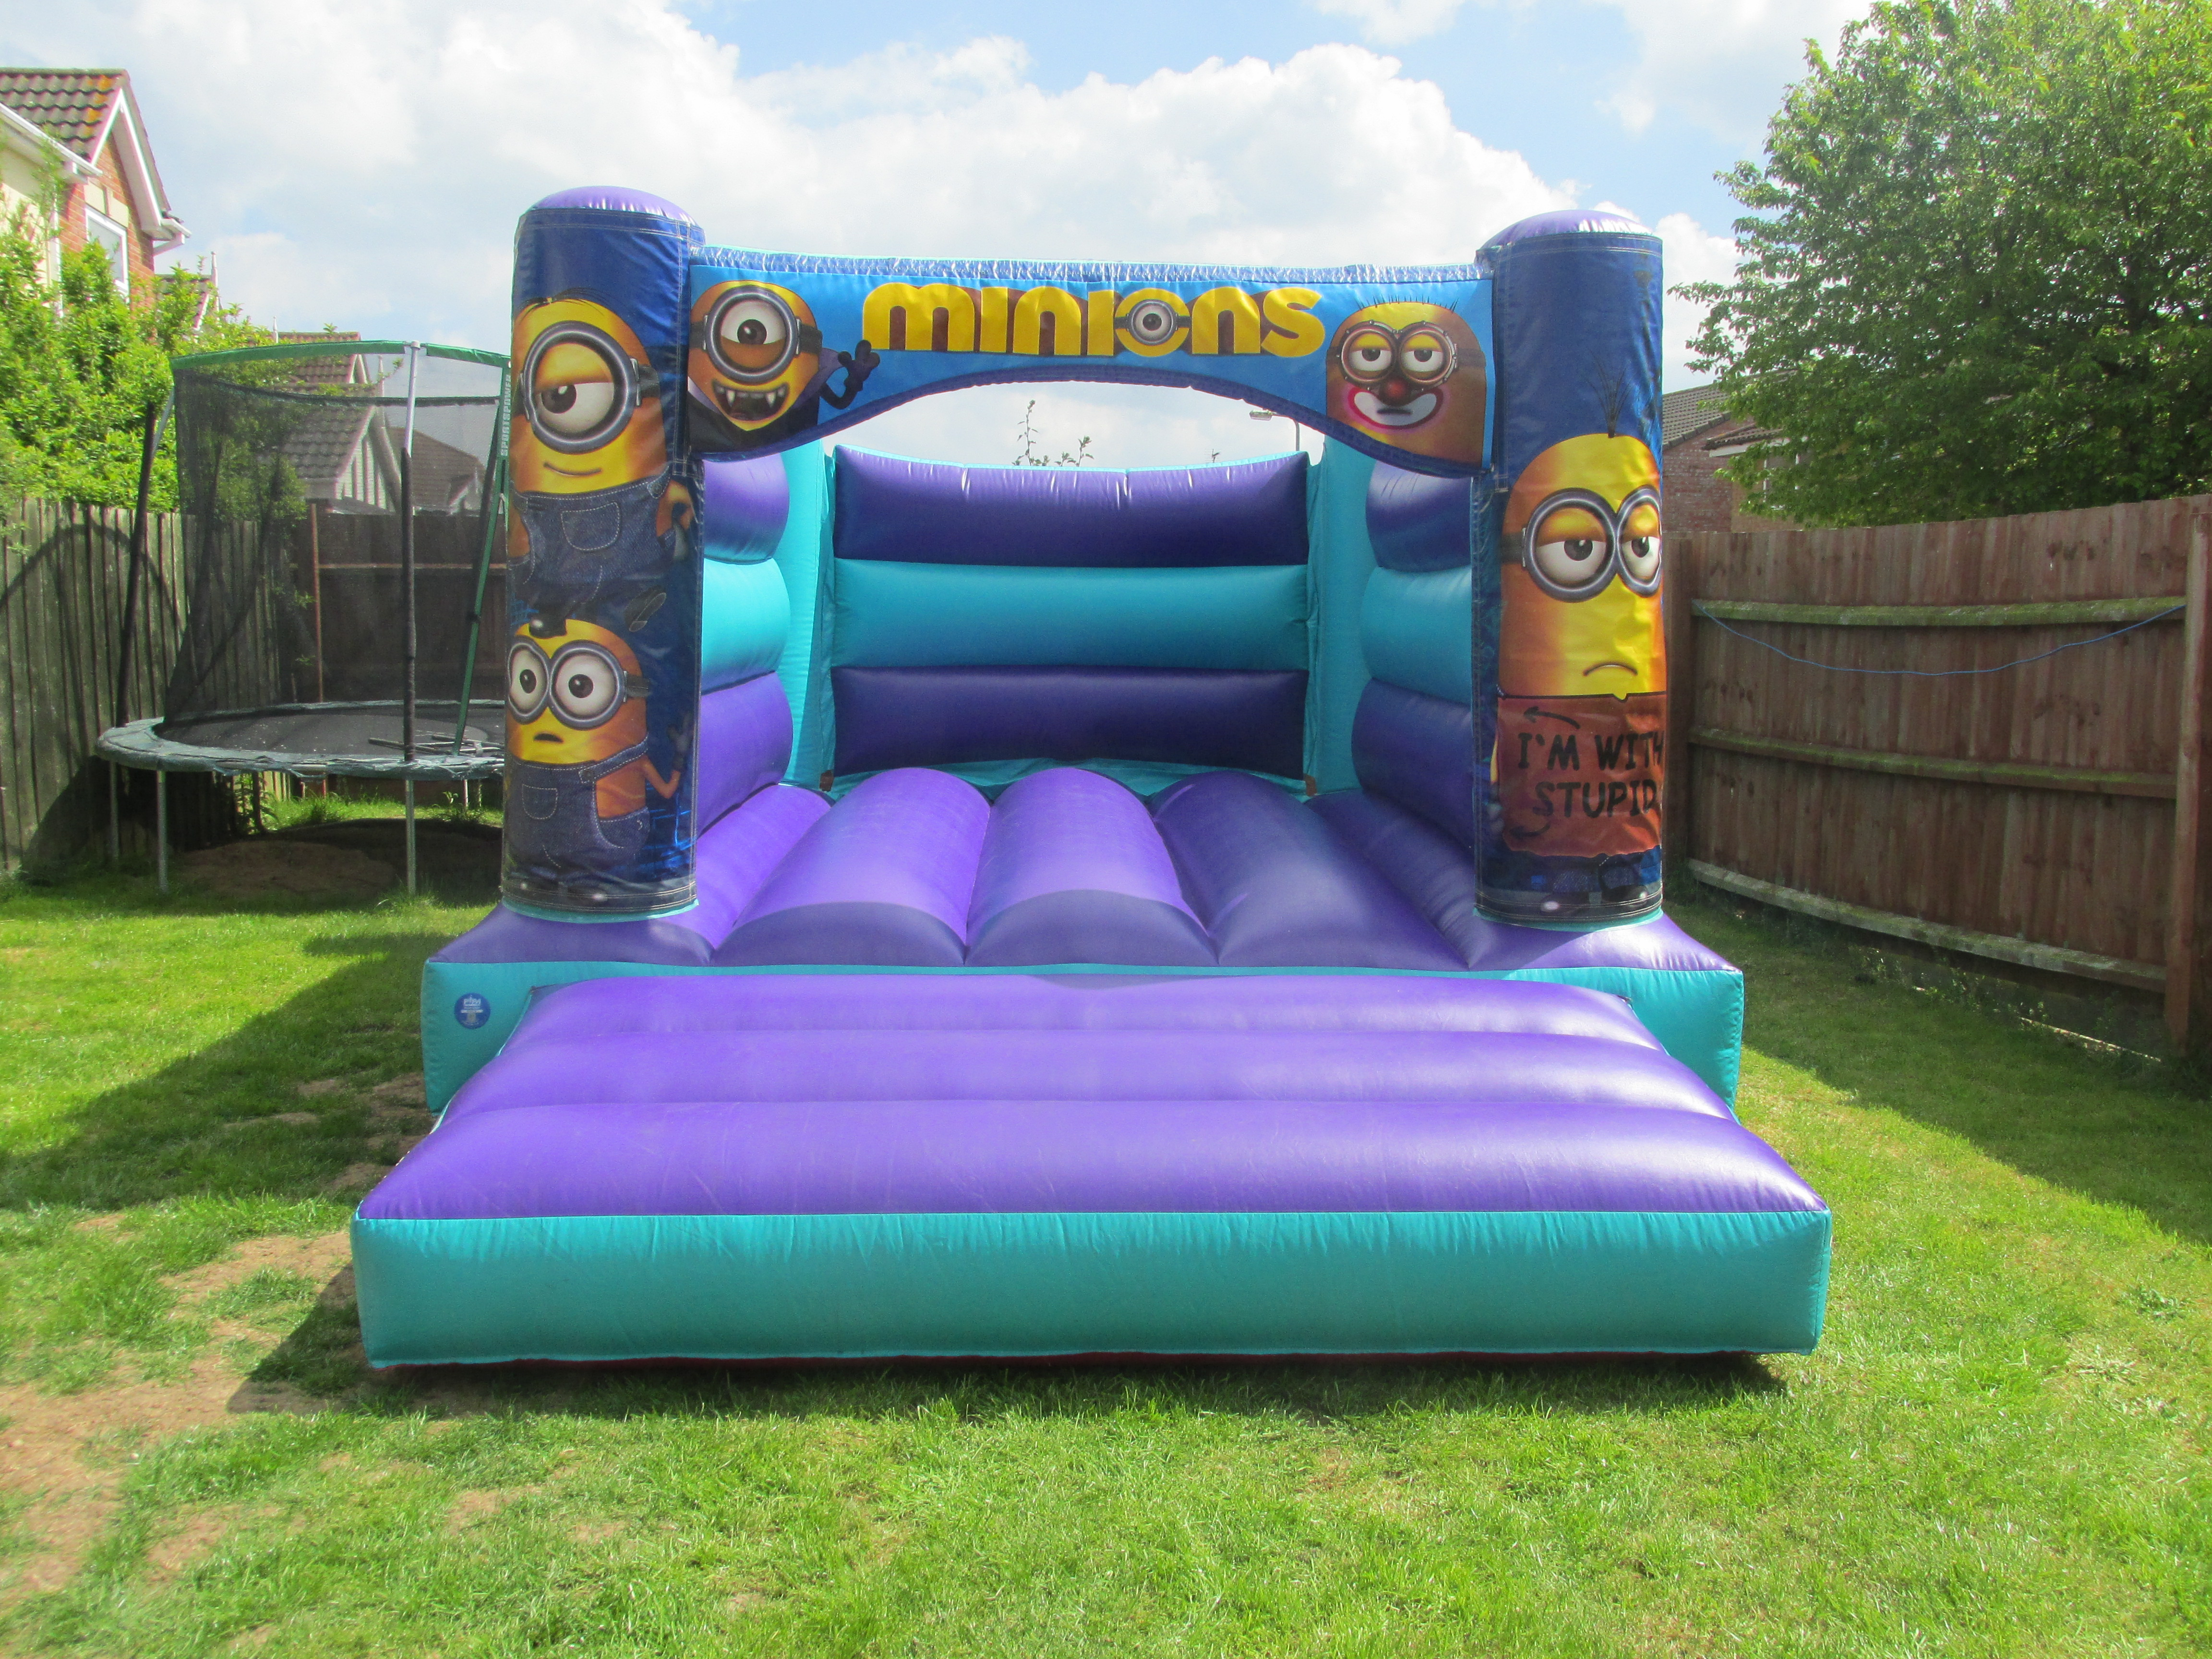 Minions Themed Bouncy Castle Hire in Peterborough, Bourne and Spalding